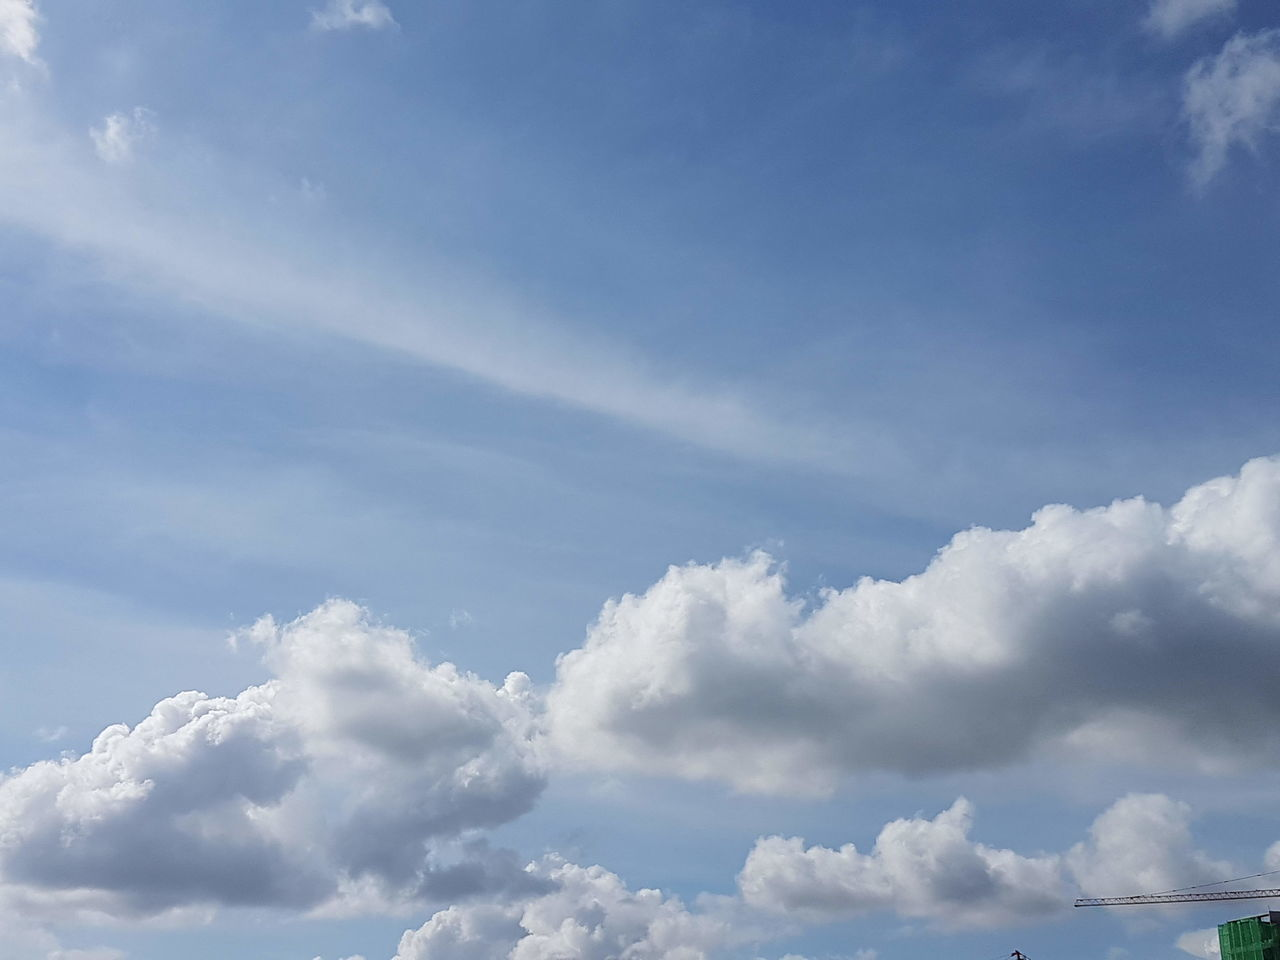 cloud - sky, sky, nature, beauty in nature, scenics, day, low angle view, outdoors, tranquility, no people, sky only, backgrounds, full frame